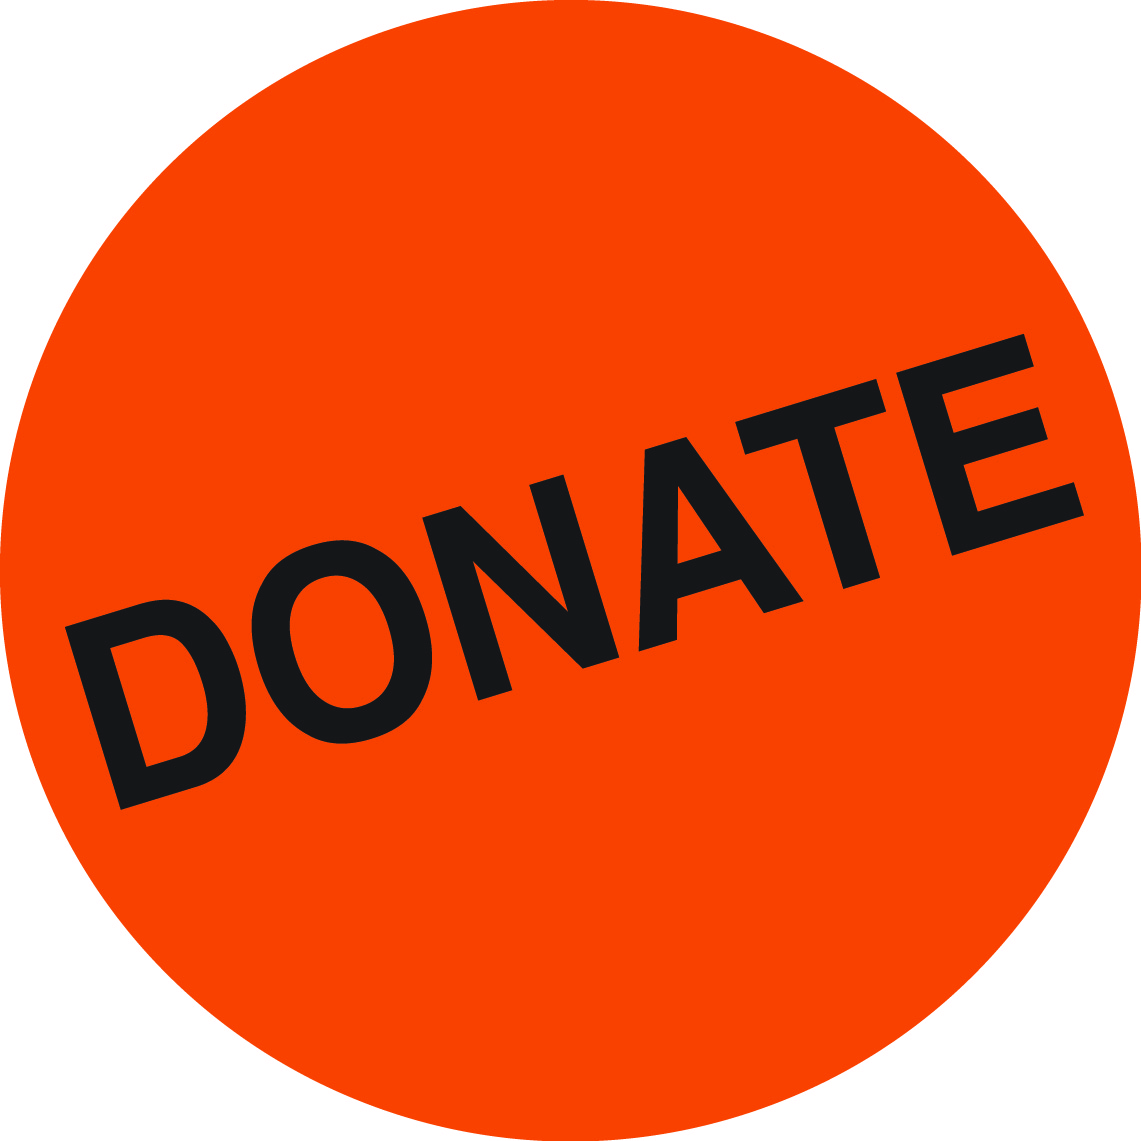 organ donation One donor can save 8 lives through organ donation and improve more than 75 through tissue donation.